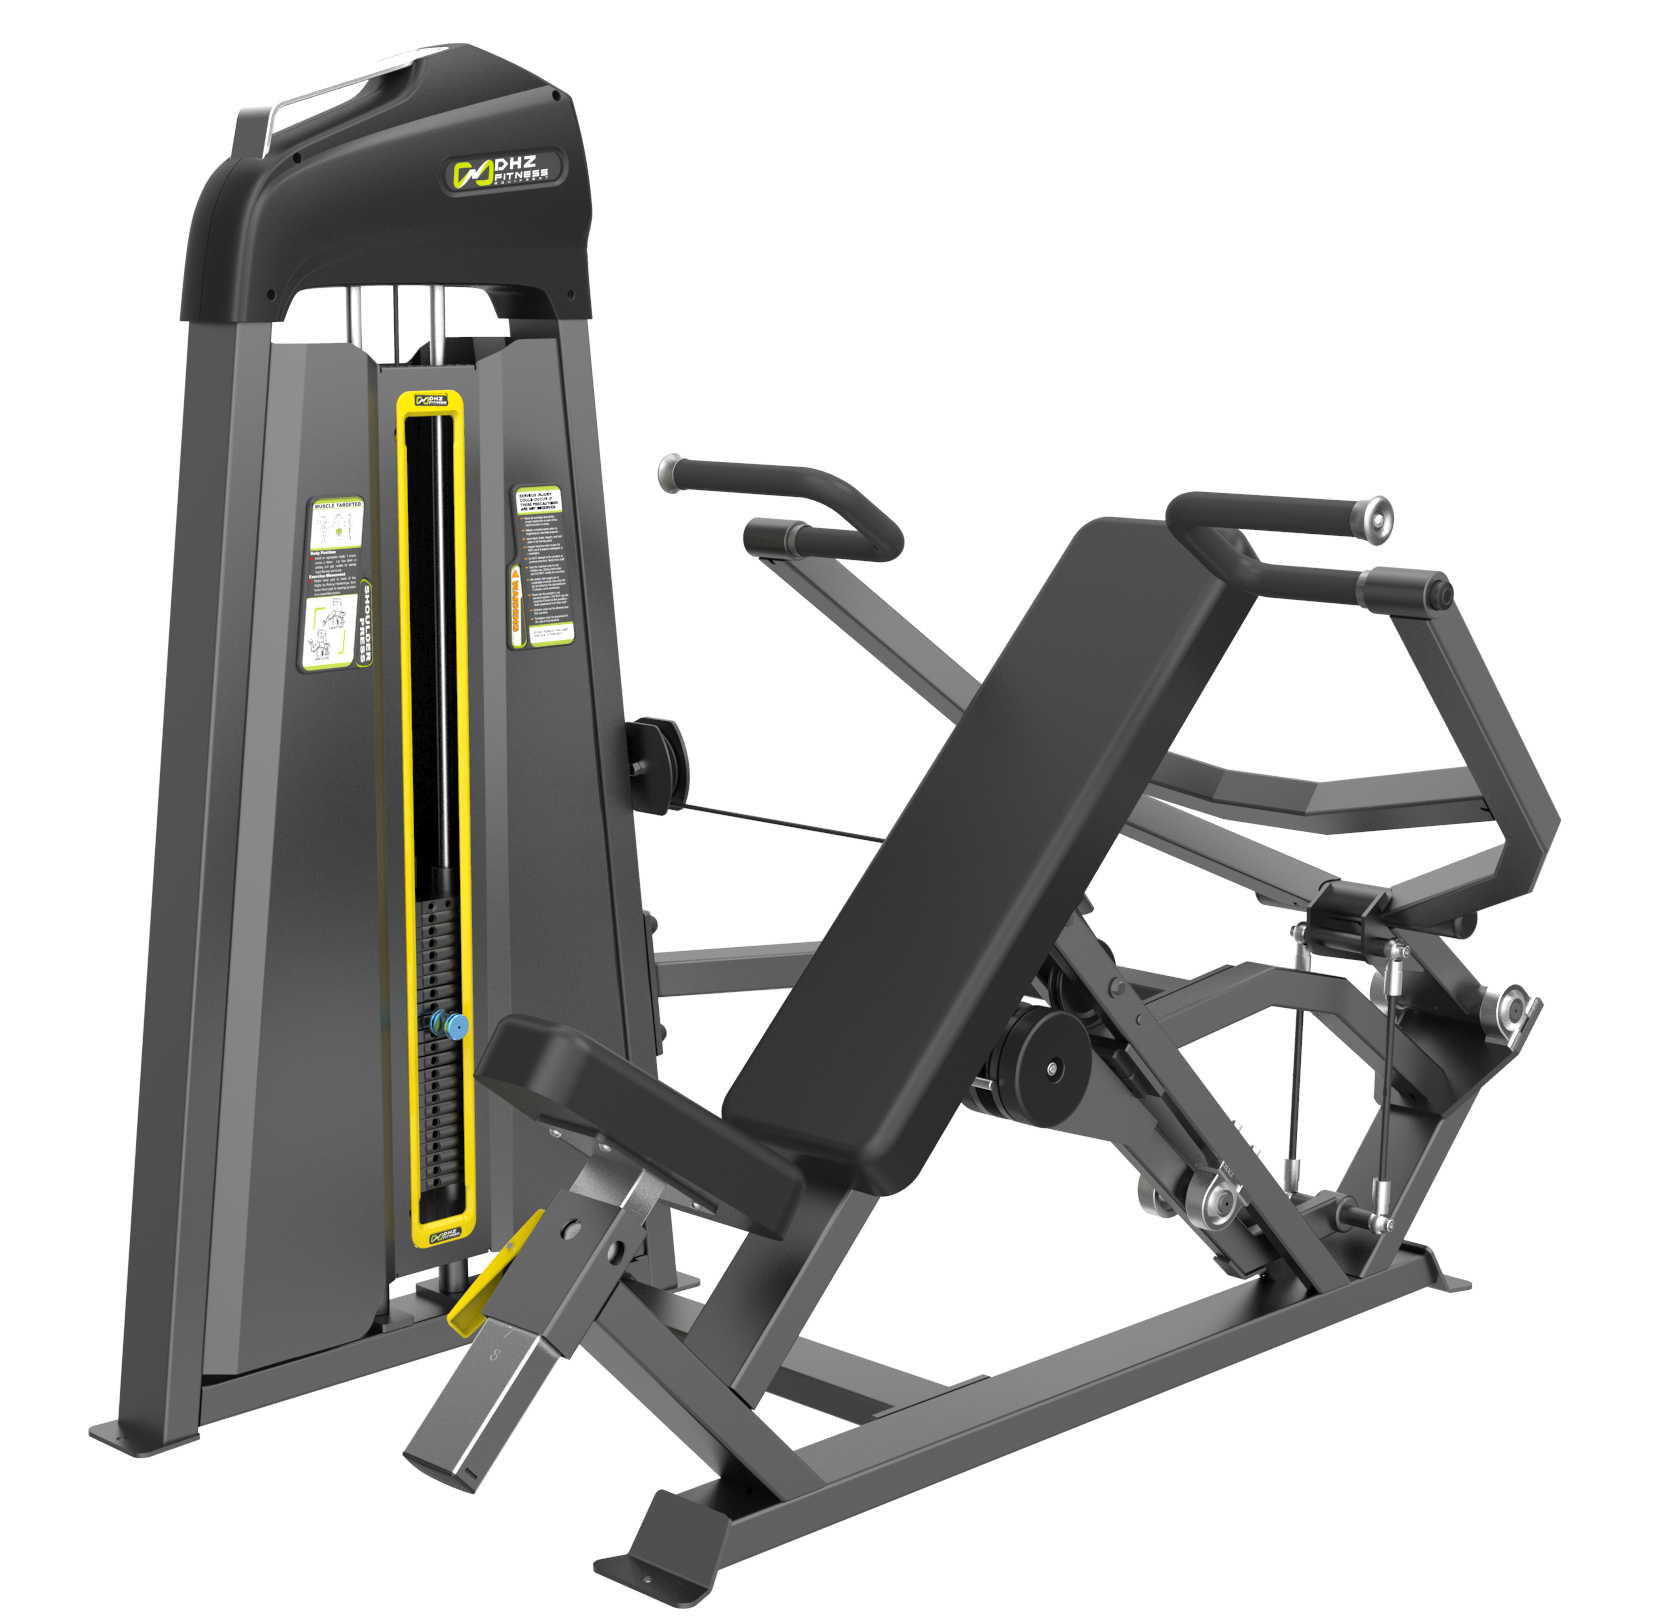 E-3006 Жим от плеч (Shoulder Press). Стек 109 кг.